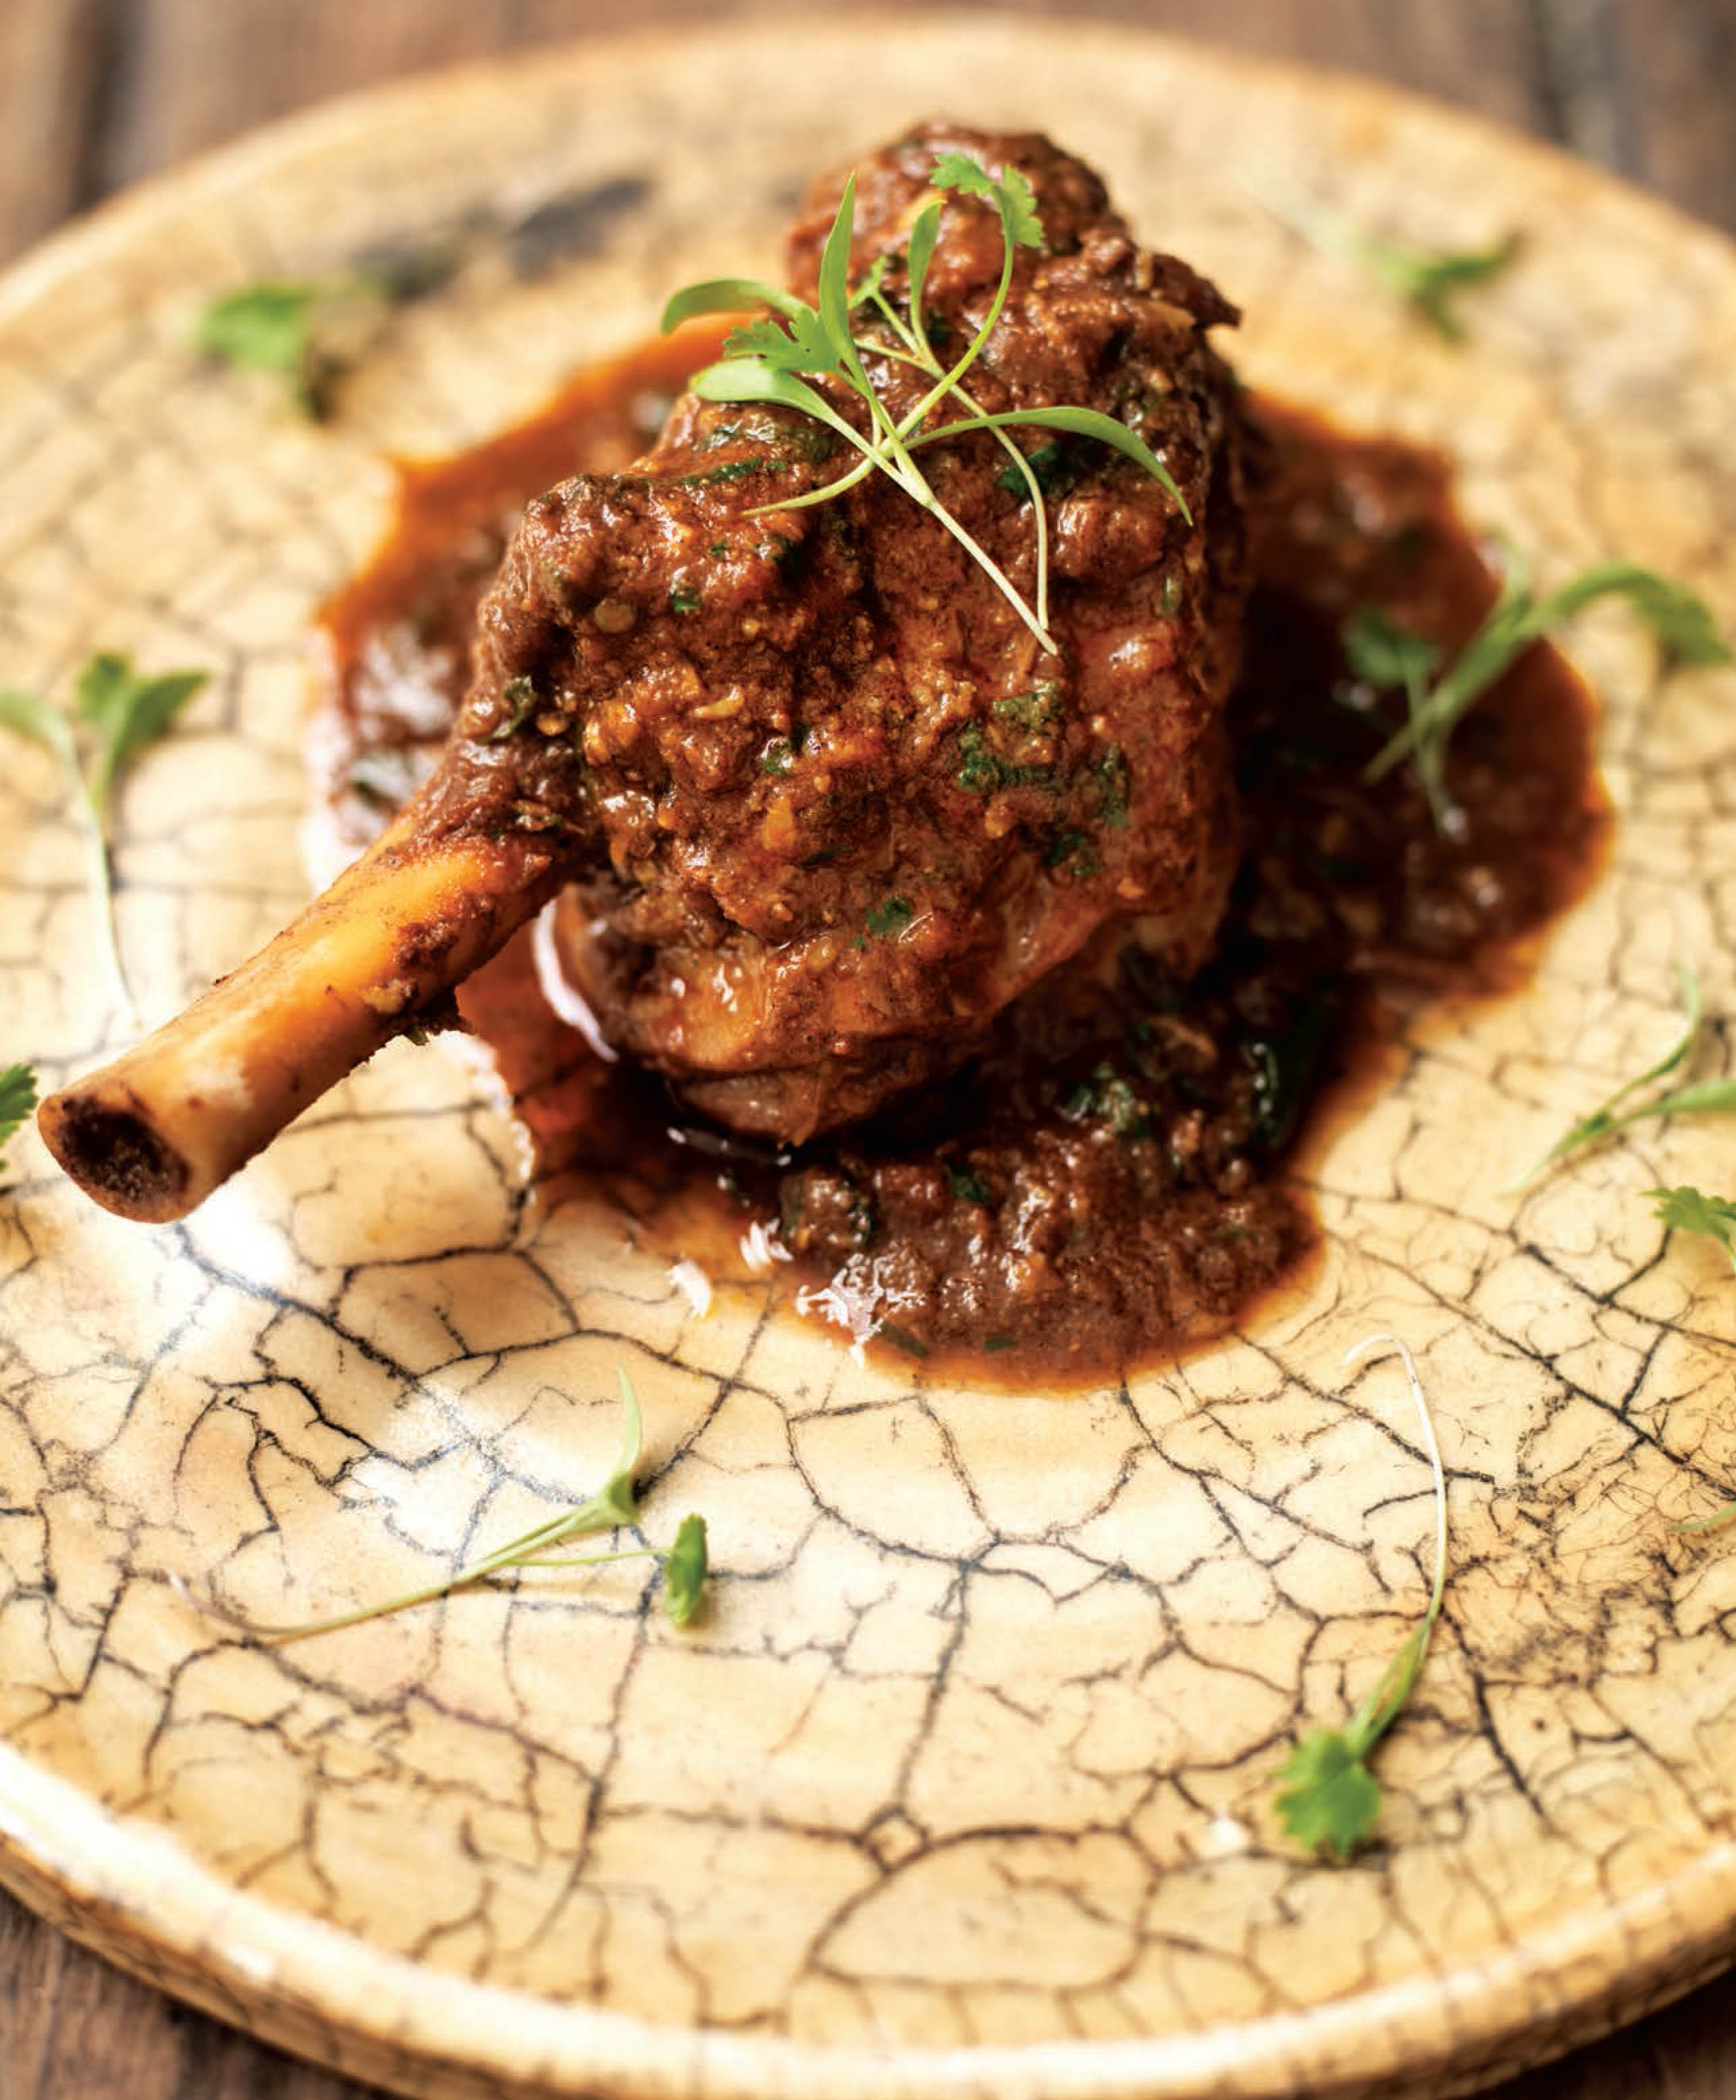 Punjabi lamb shank (North India)